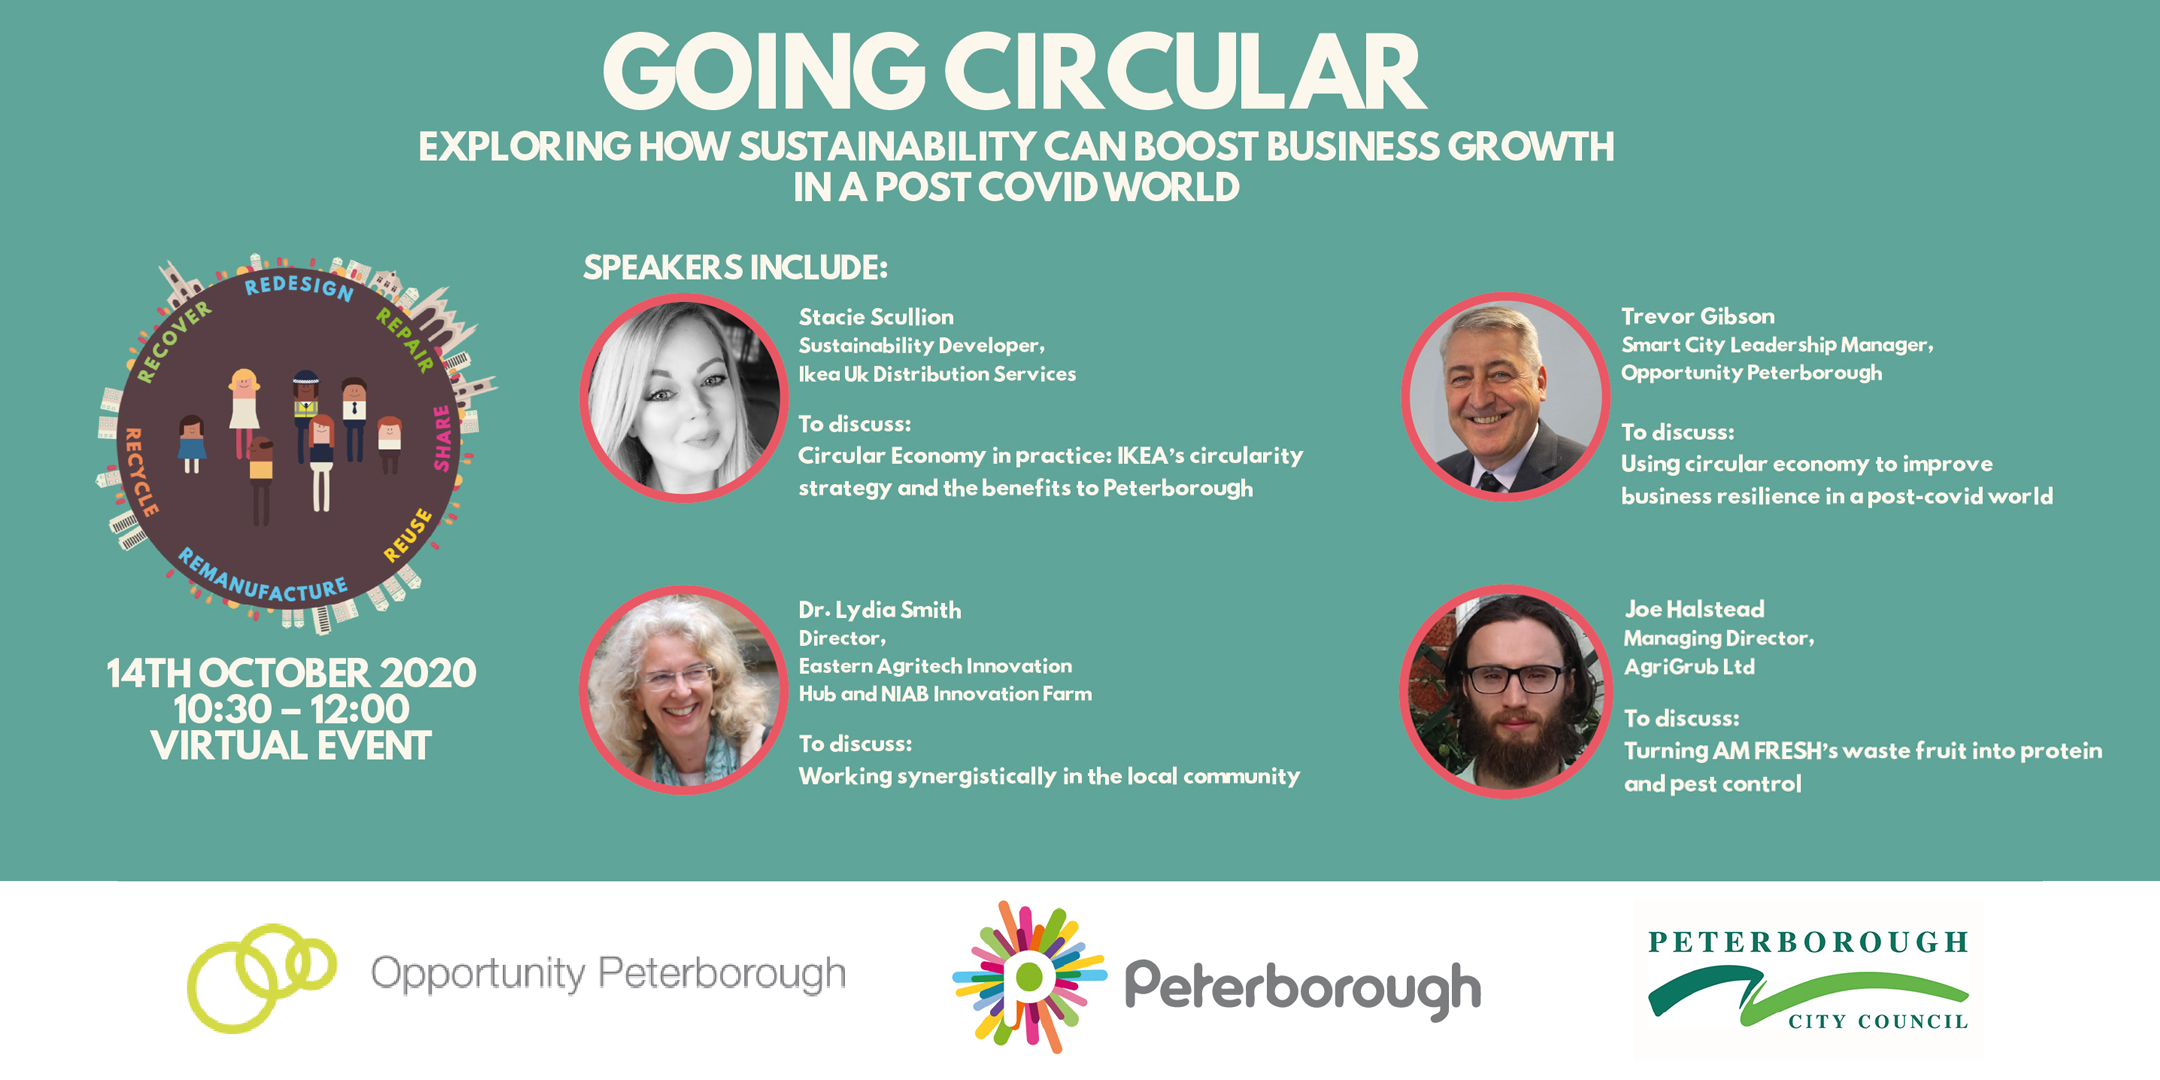 Going circular – how sustainability can boost business growth after COVID19